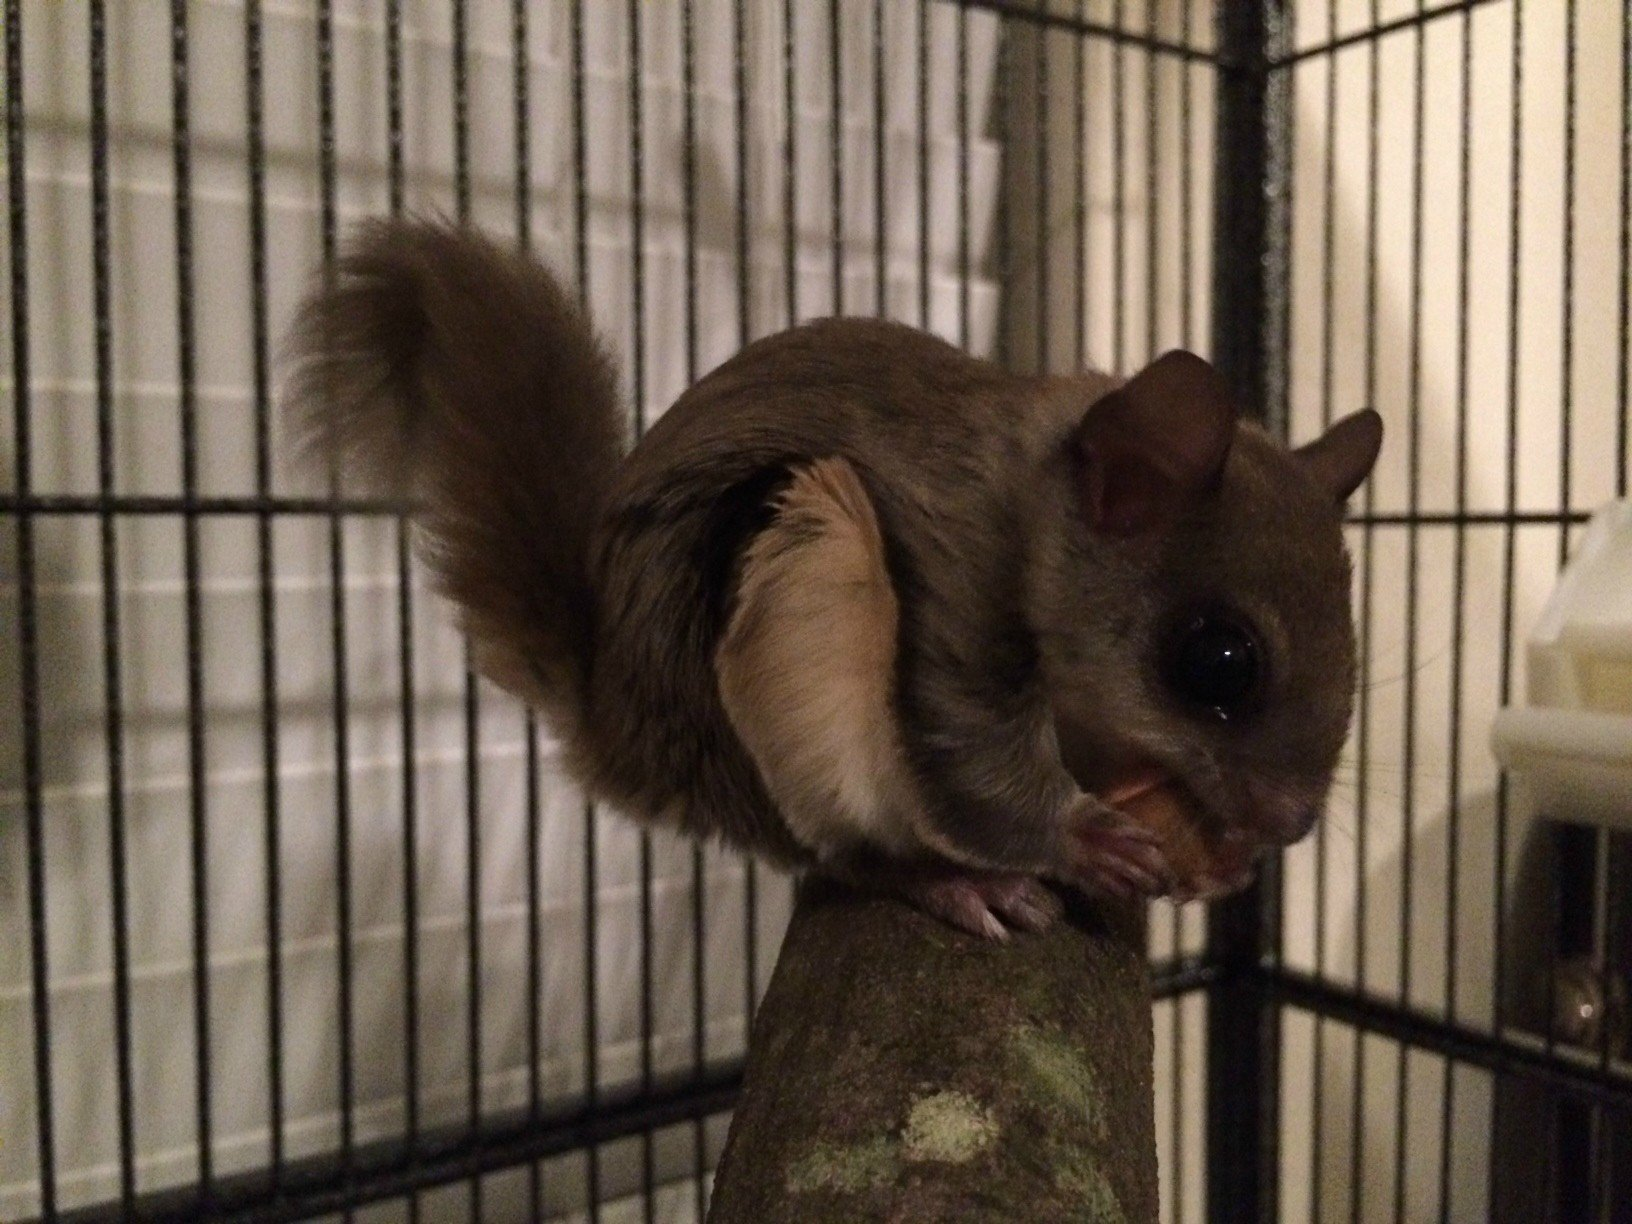 A Southern Flying Squirrel